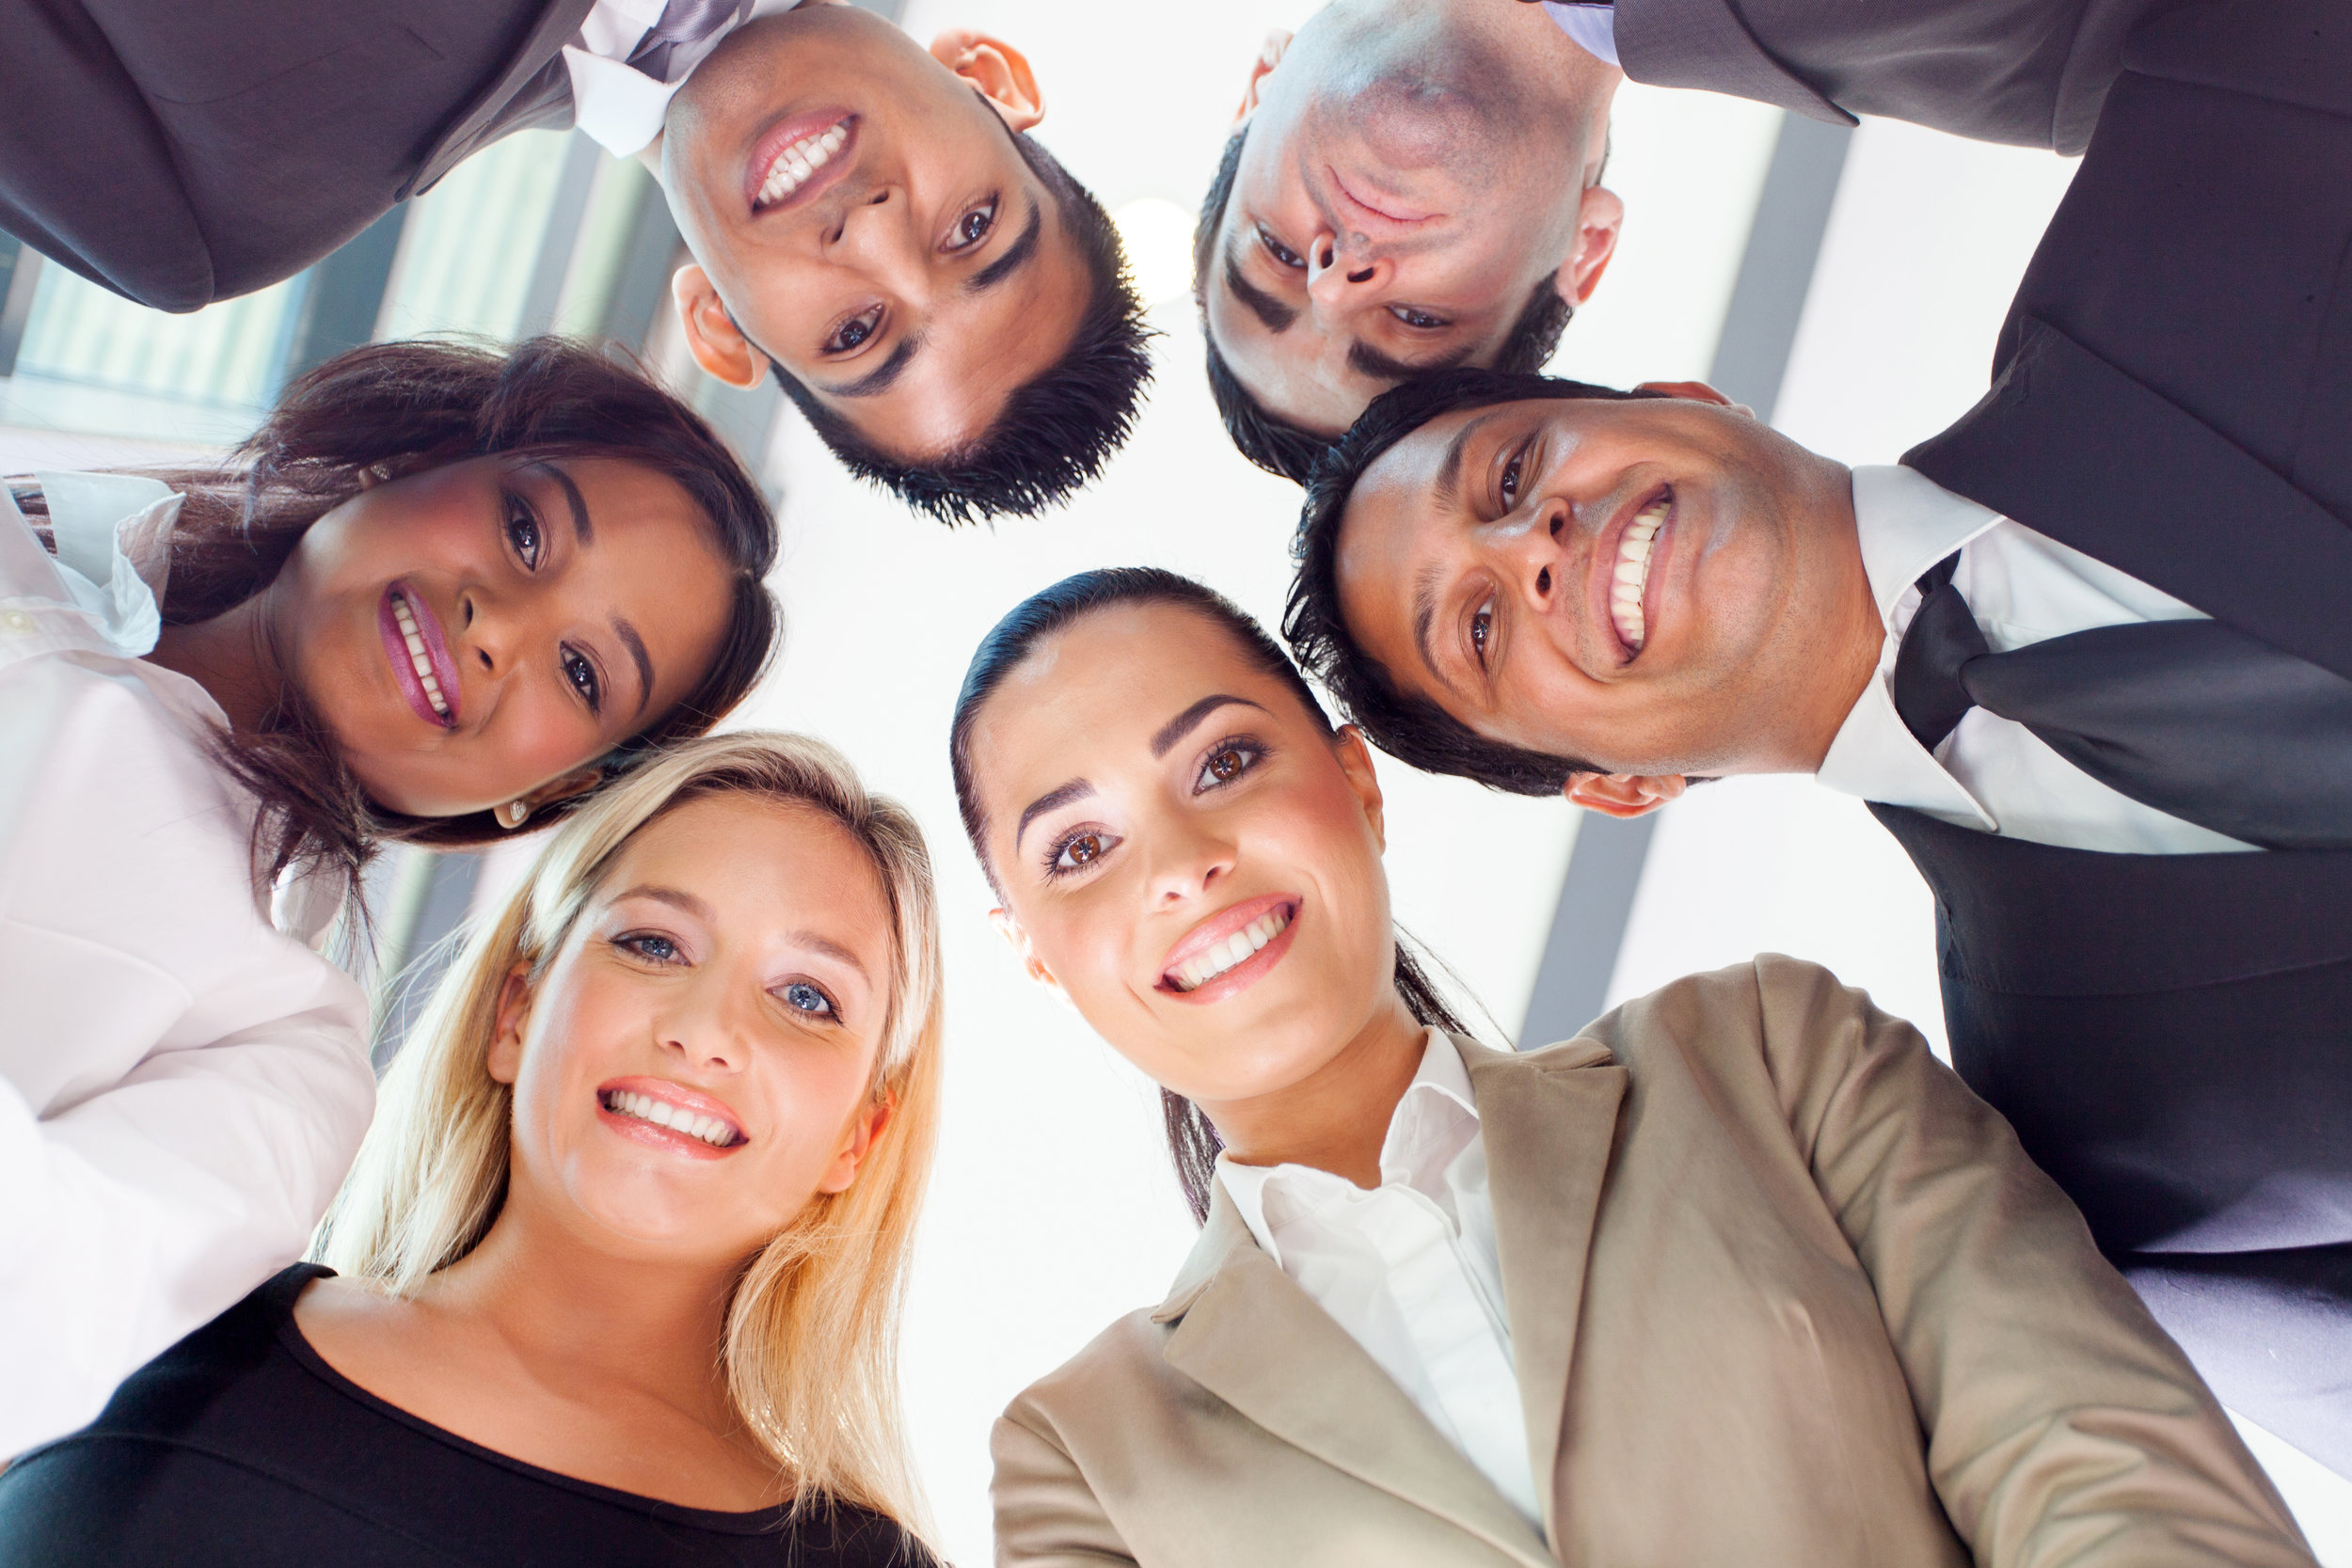 Ethnically diverse companies are 35% more likely to outperform their competition.